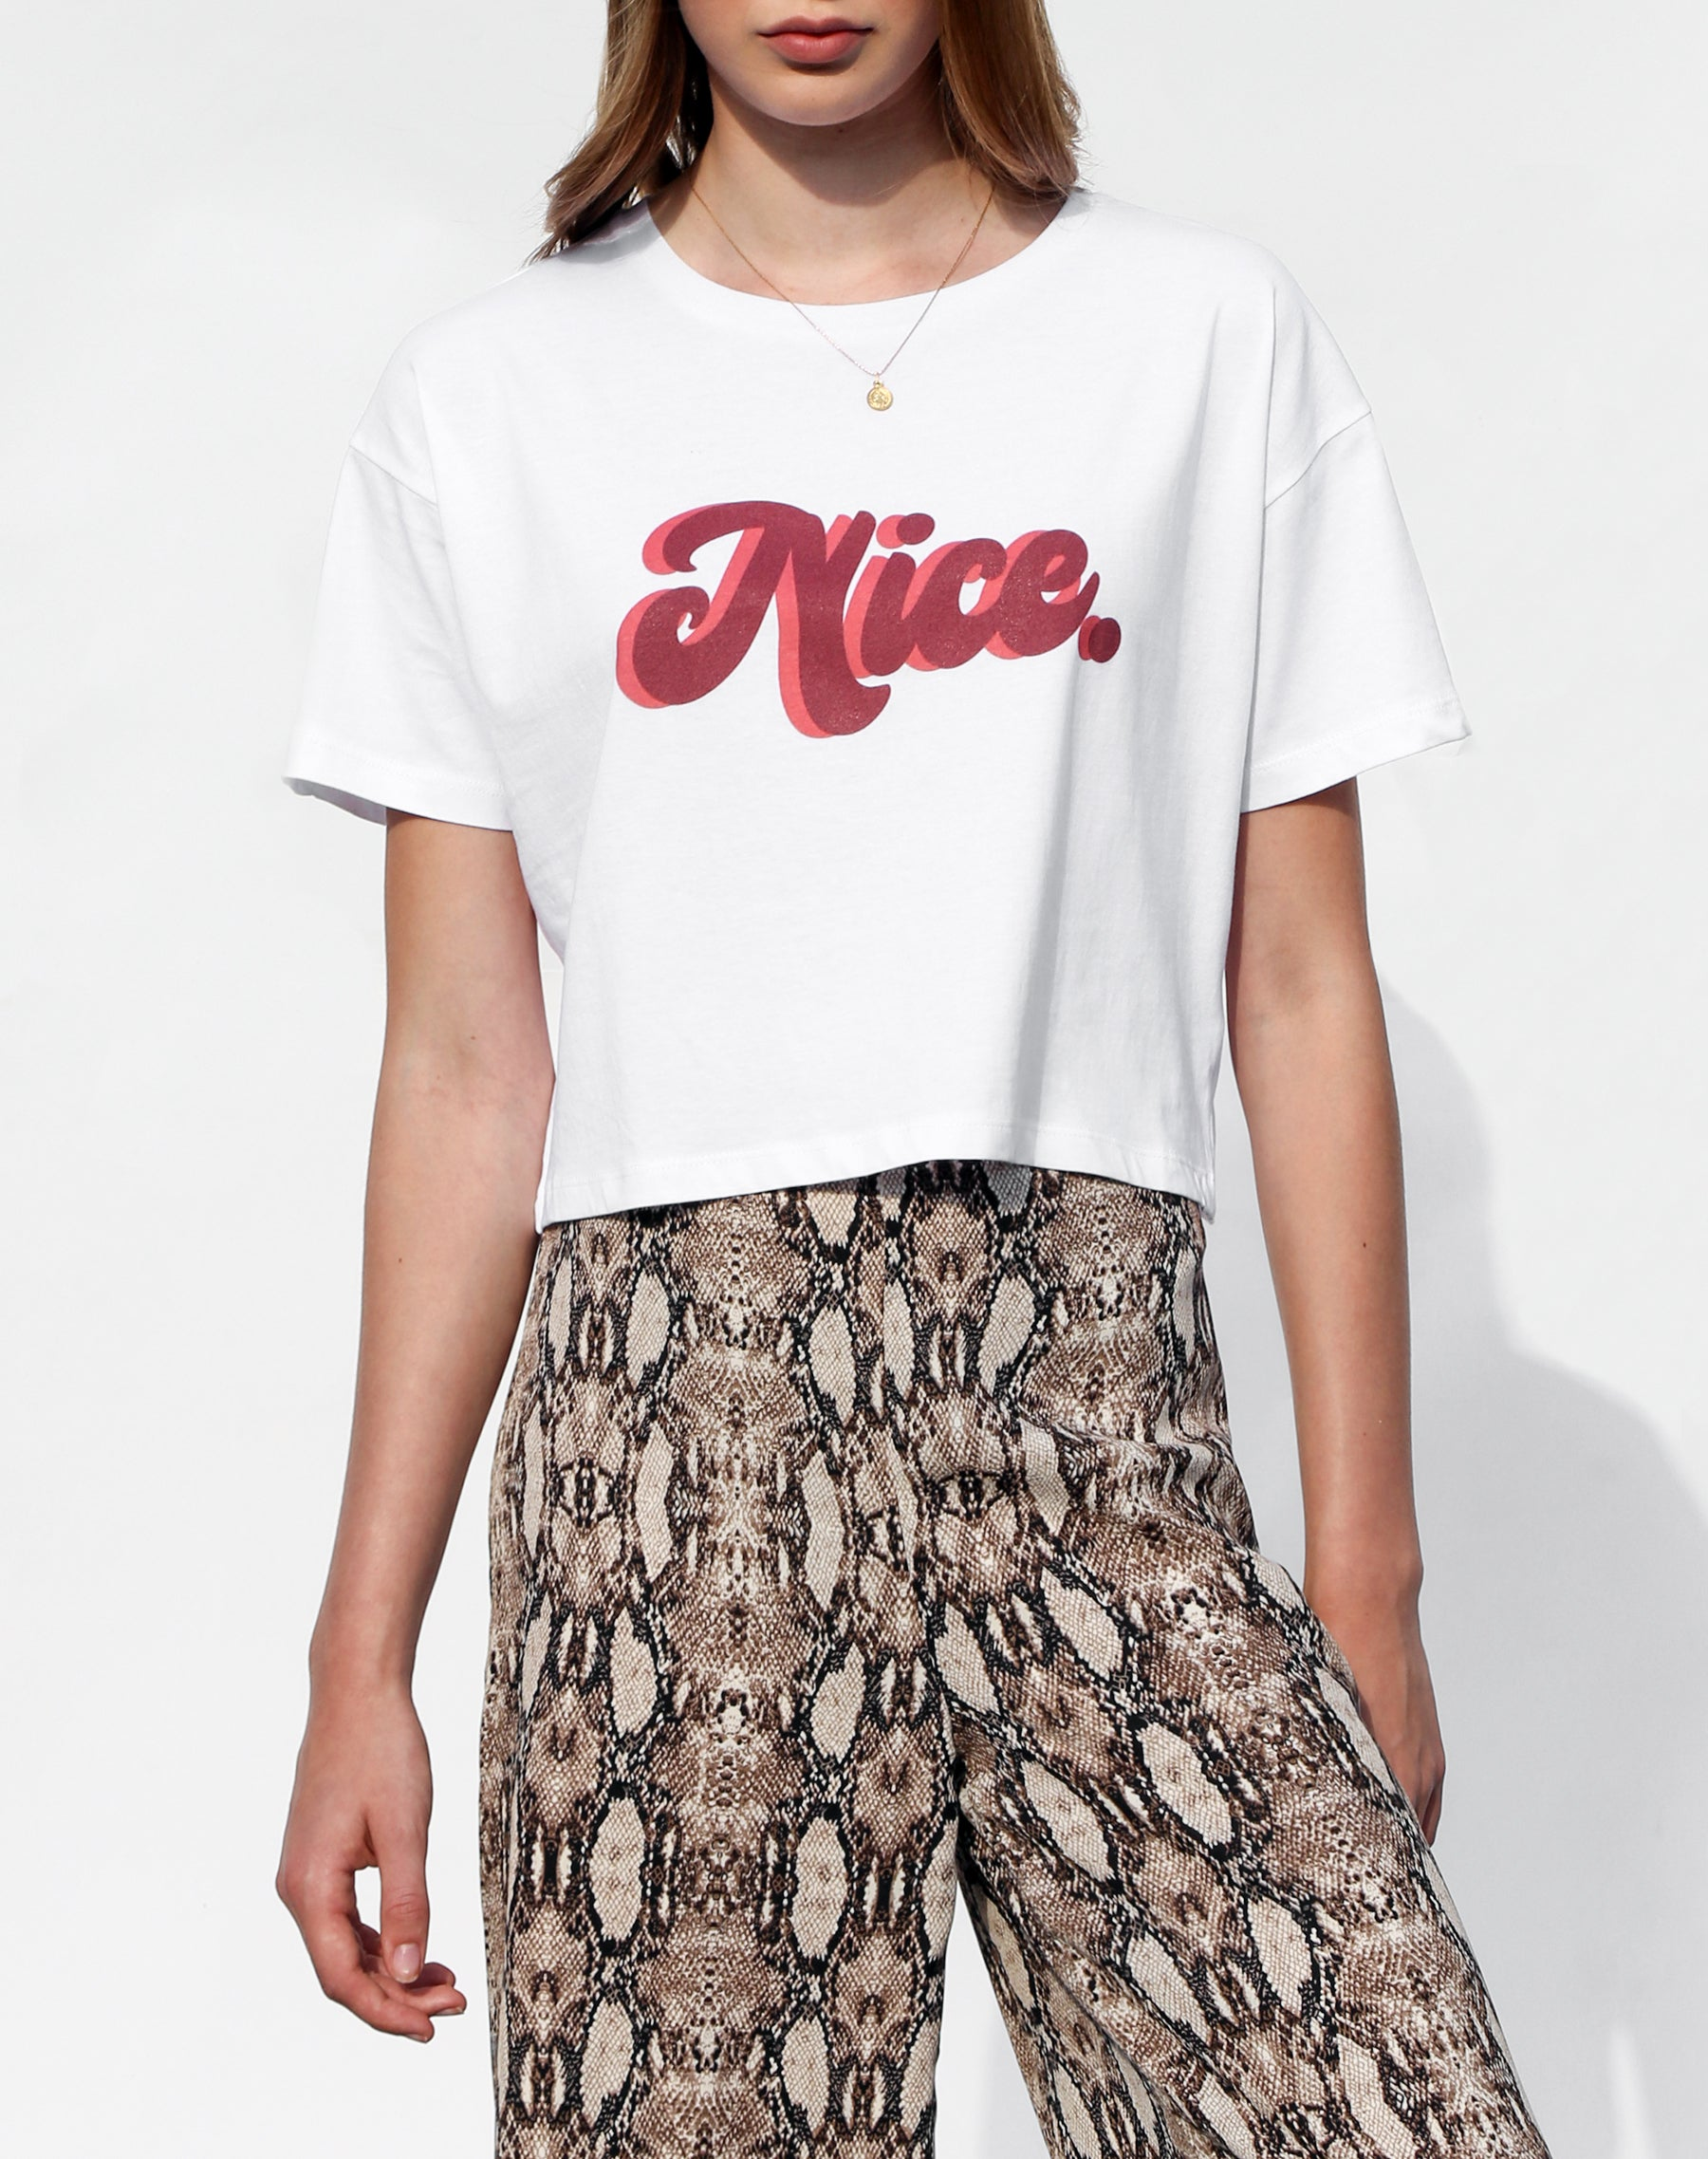 Photo of the Nice cropped white tee from the Canada Day collection by Brunette the Label.